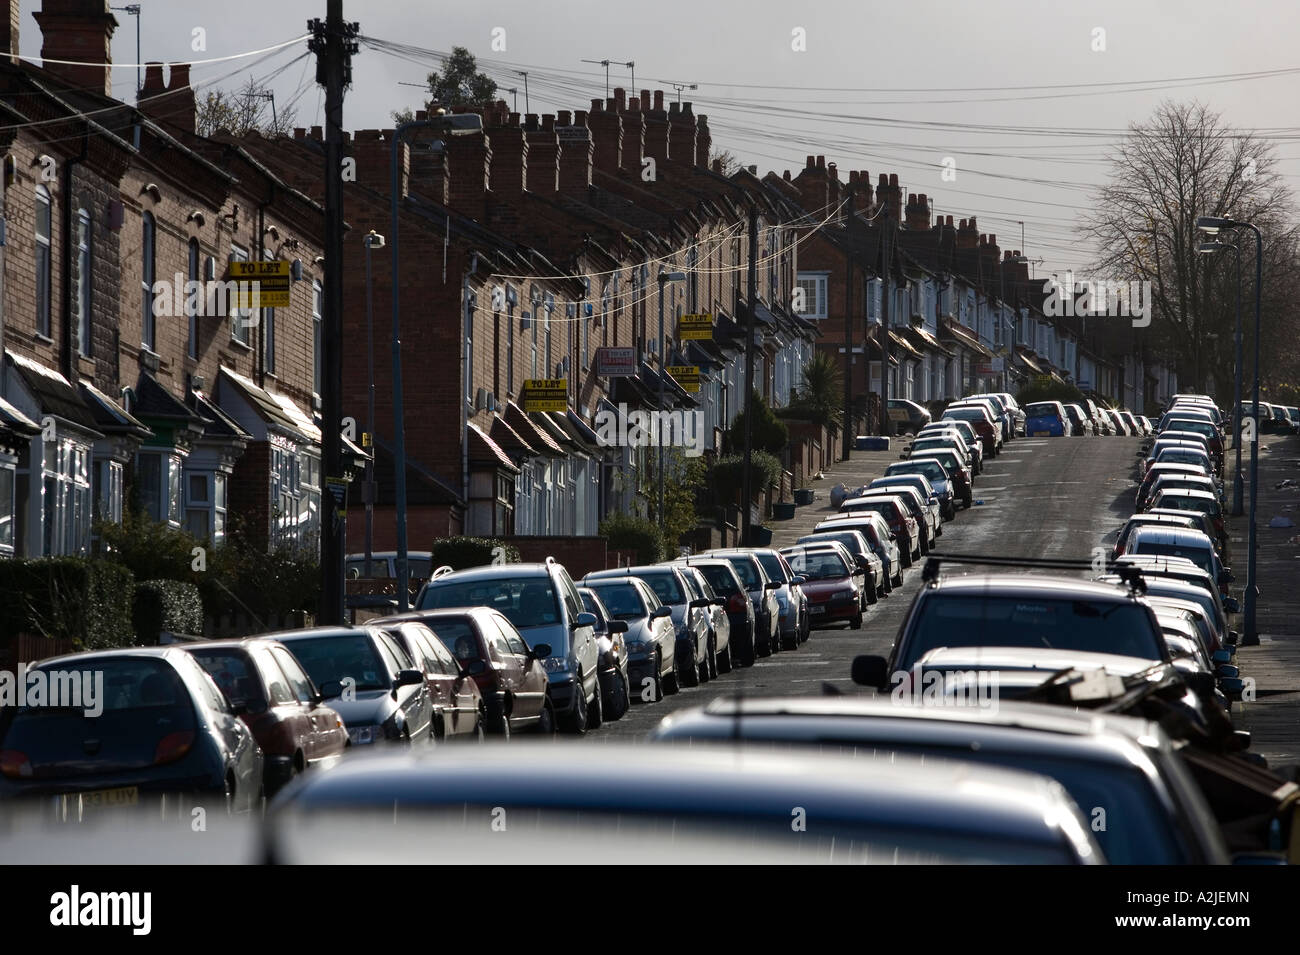 Rows of parked cars line Alton Road in inner city Birmingham West Midlands England UK The area is mainly student - Stock Image